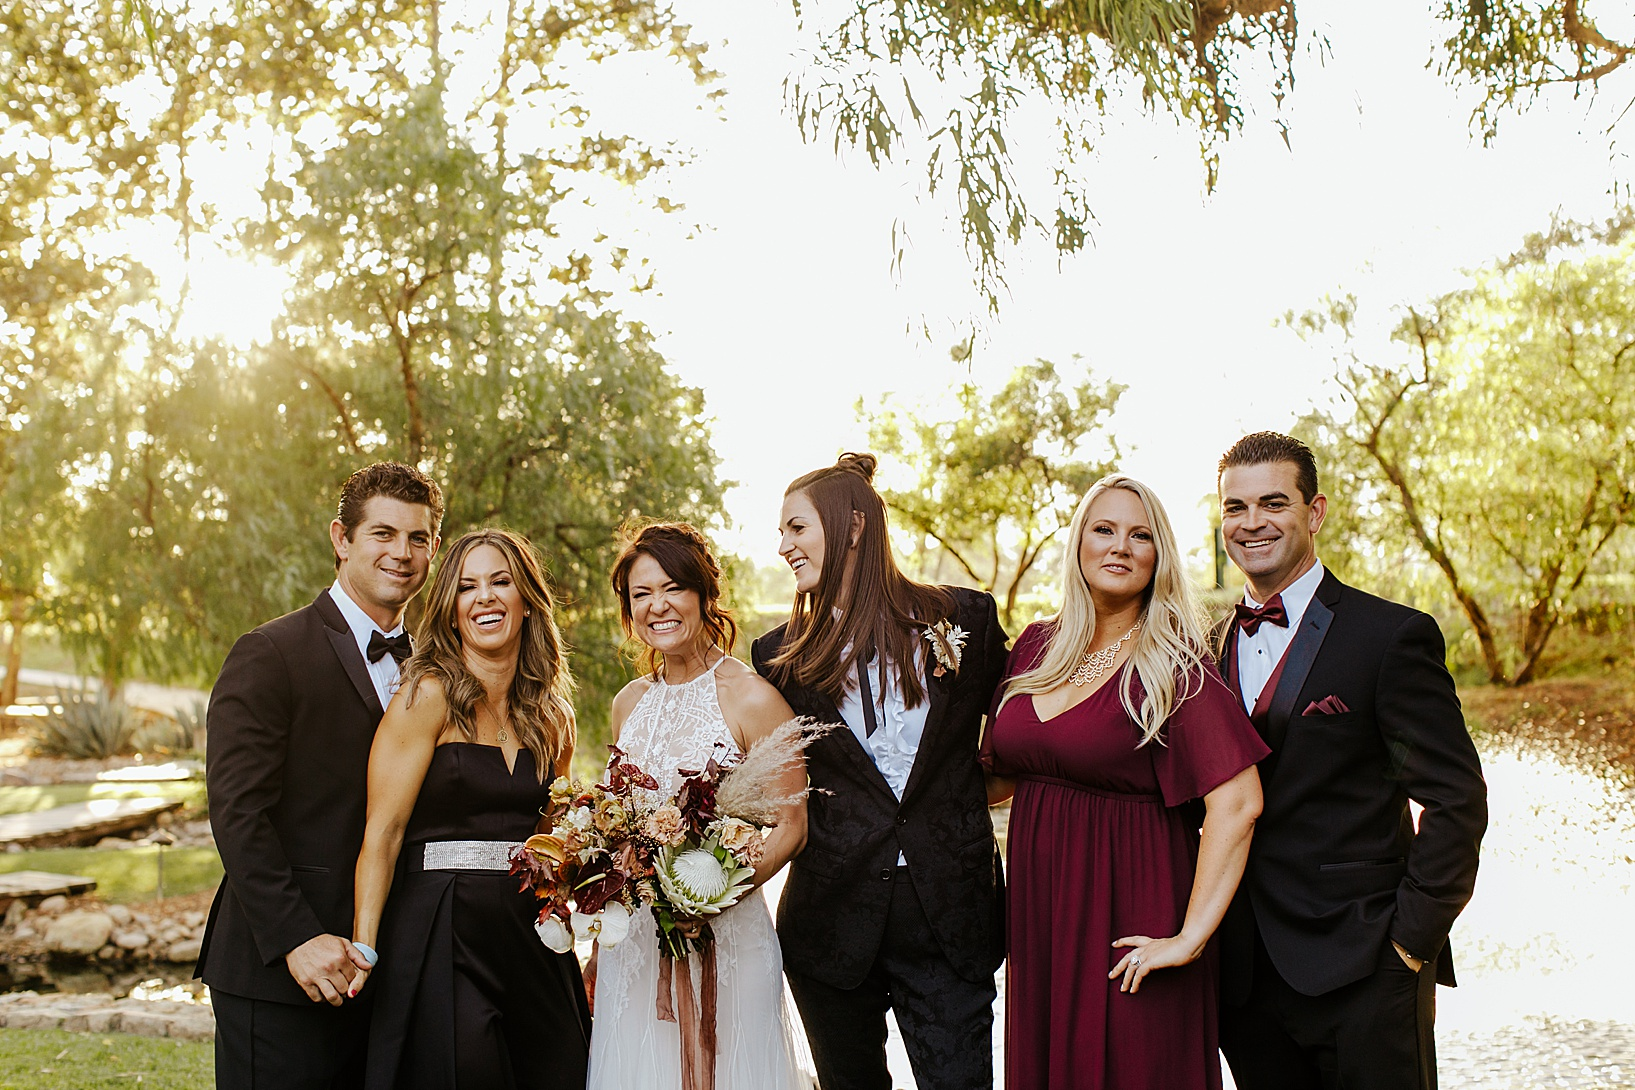 family photos for Temecula wedding at Galway Downs